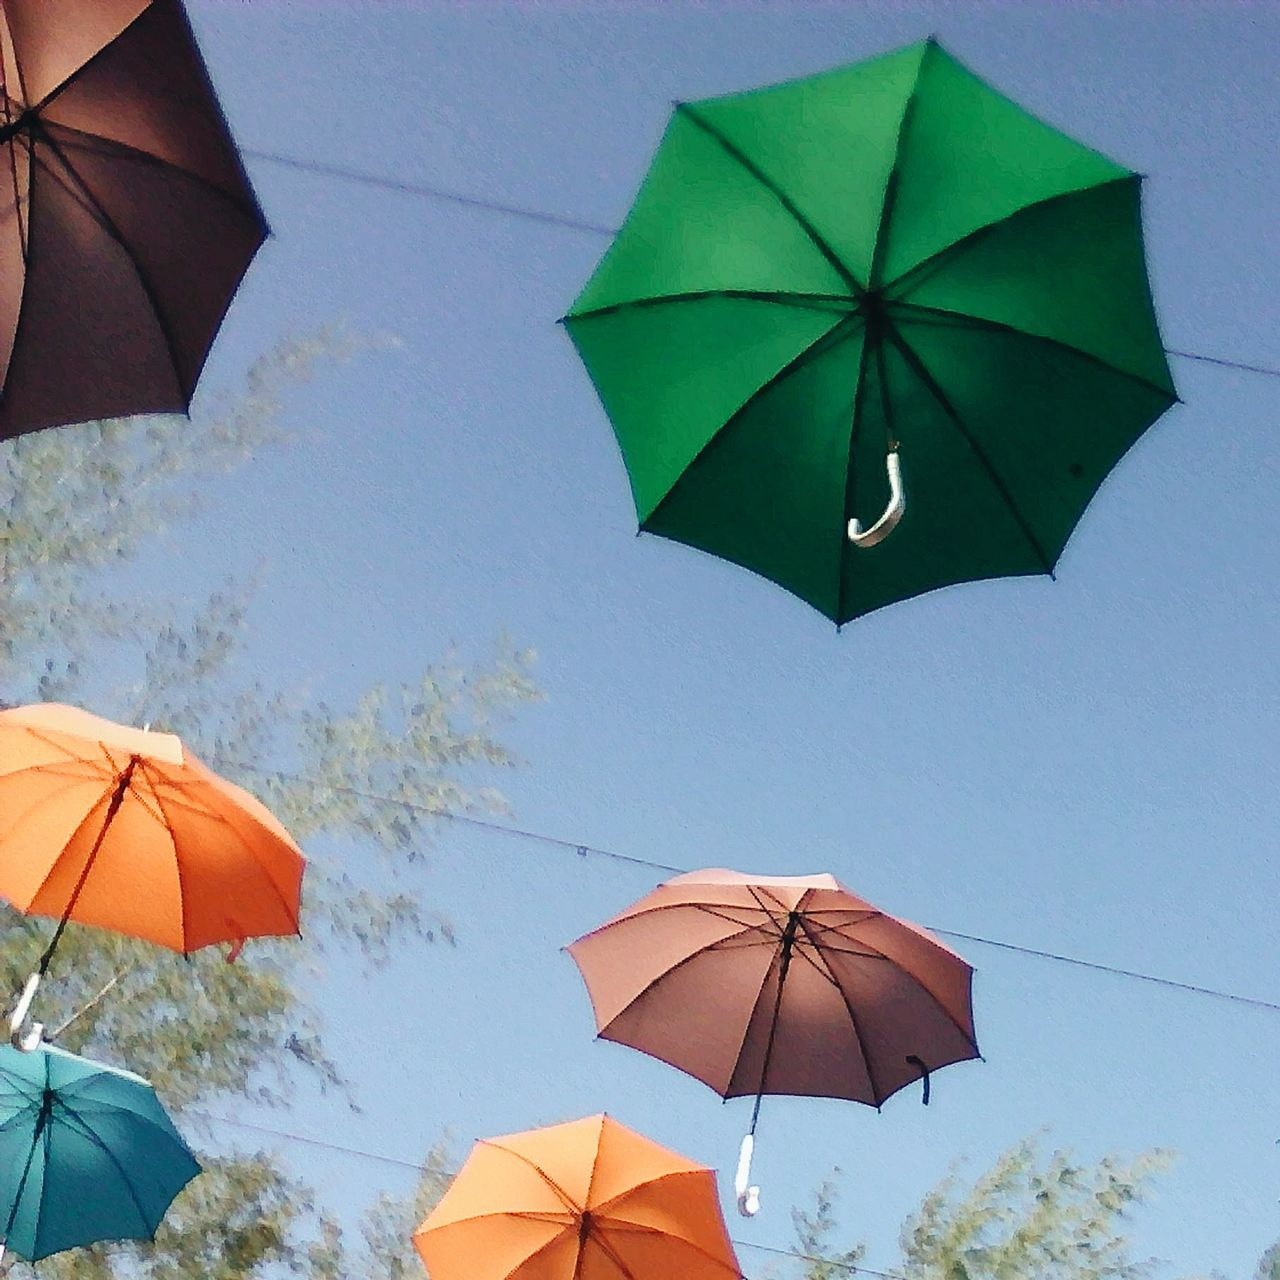 umbrella, protection, rain, weather, shelter, summer, blue, day, multi colored, outdoors, nature, clear sky, no people, close-up, sky